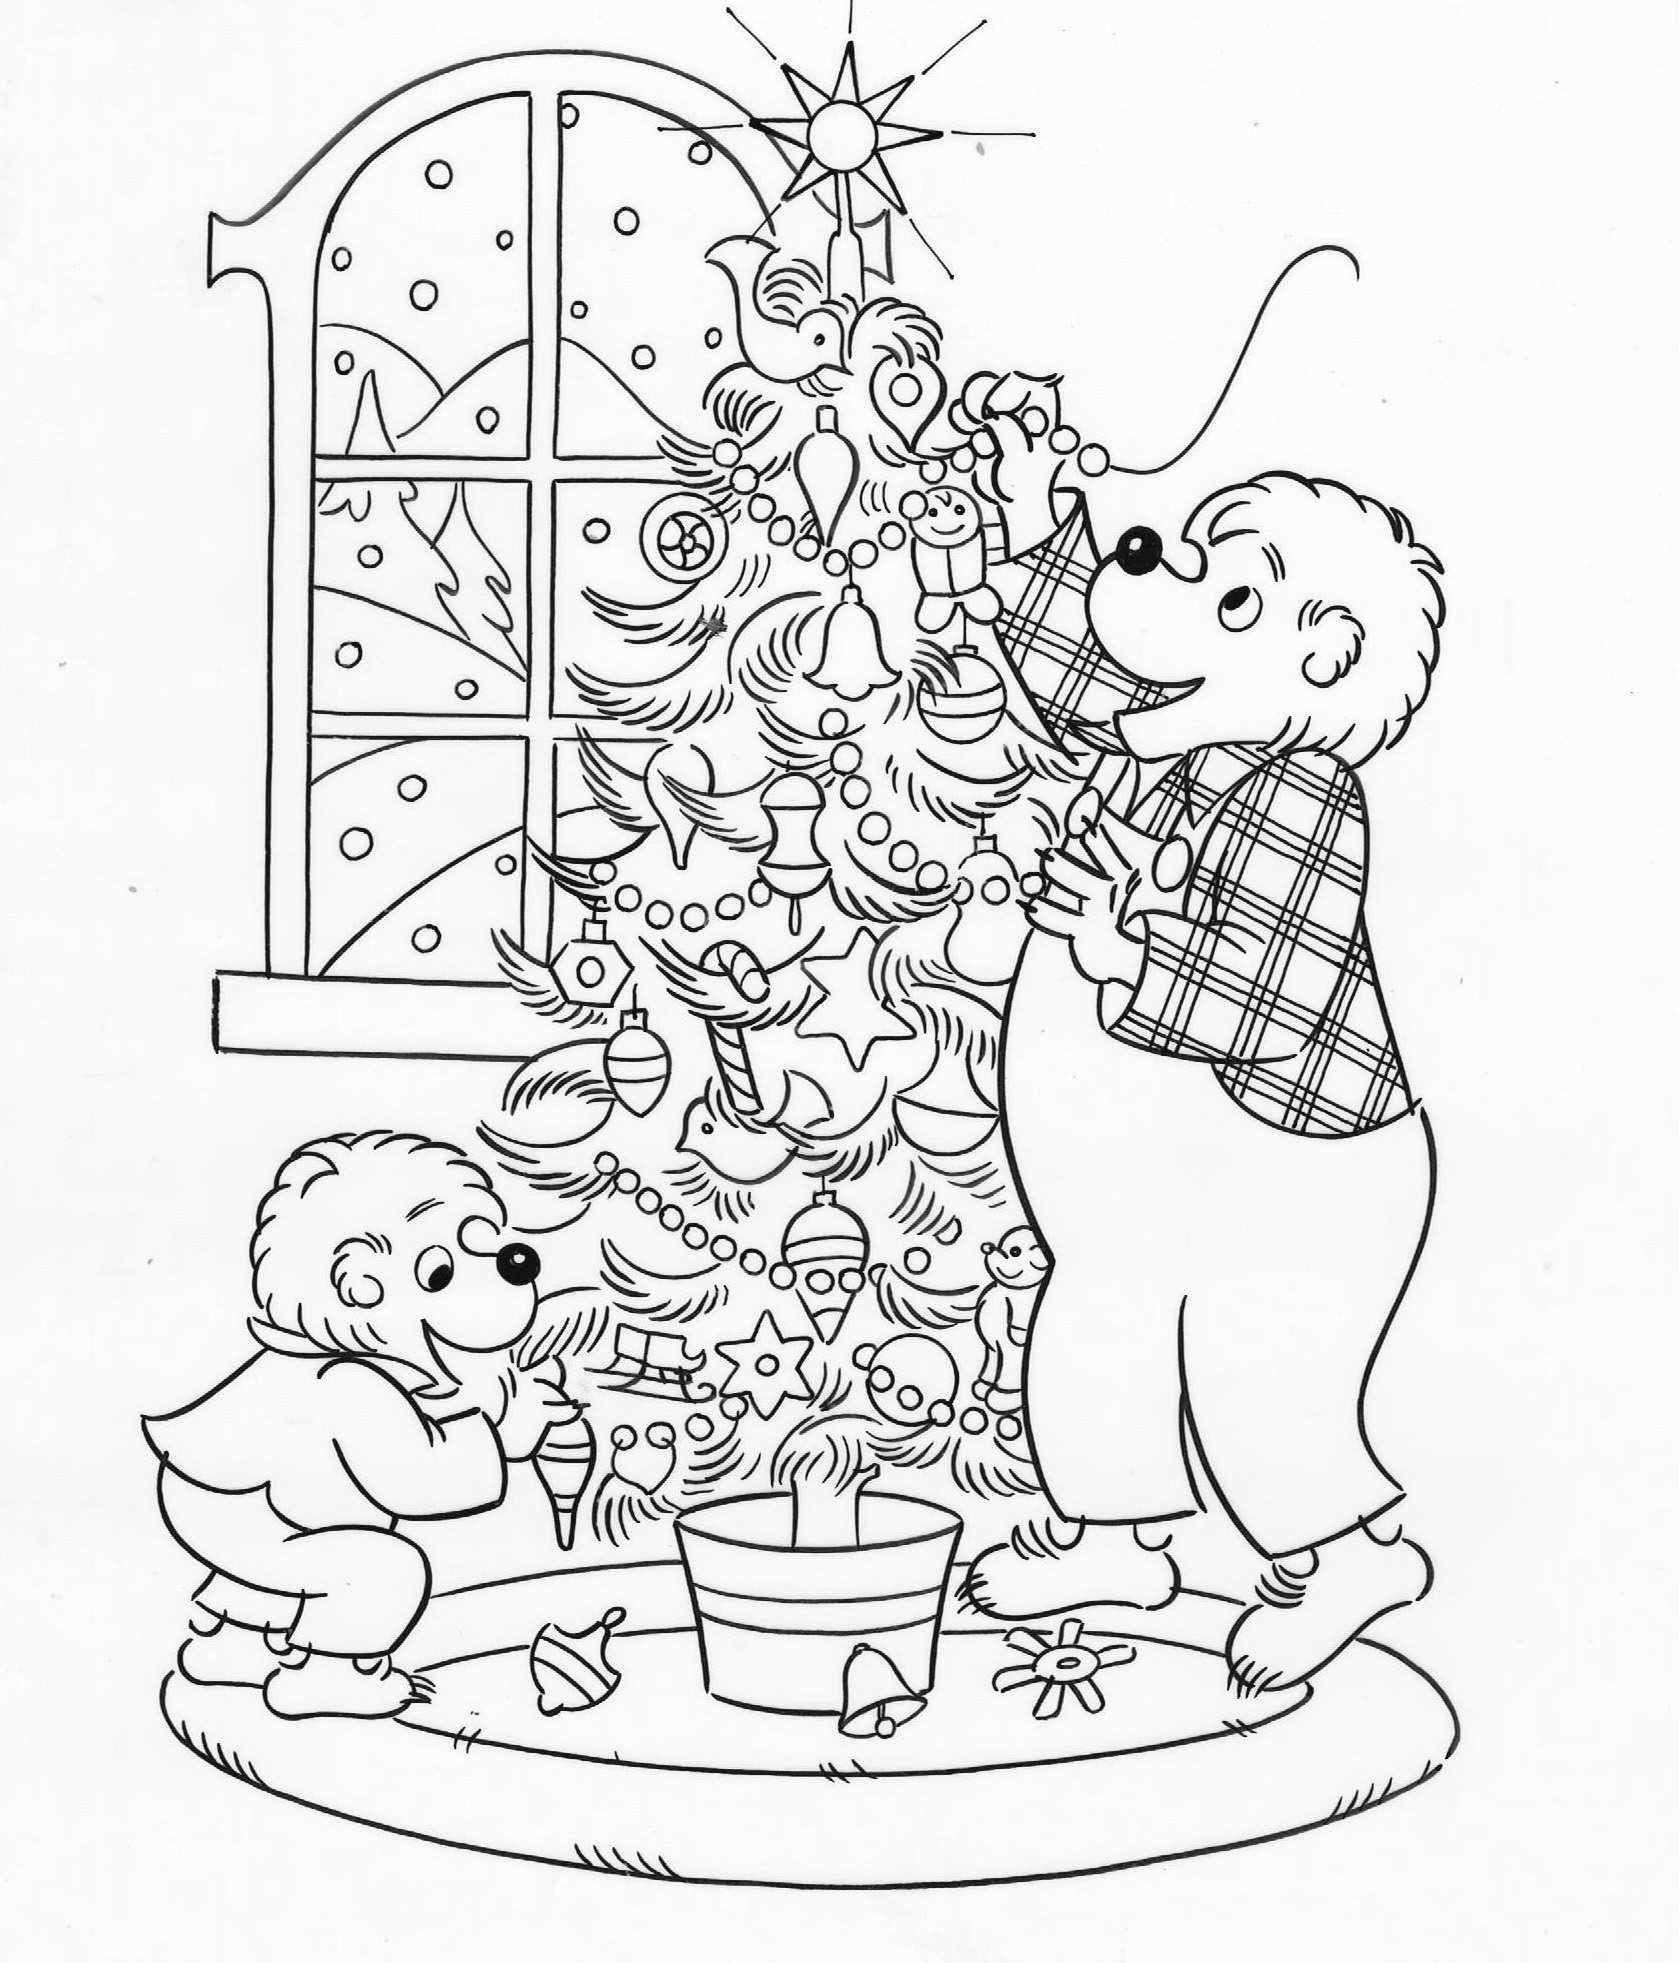 1679x1963 The Berenstain Bears Christmas Tree Coloring Page Free Printable